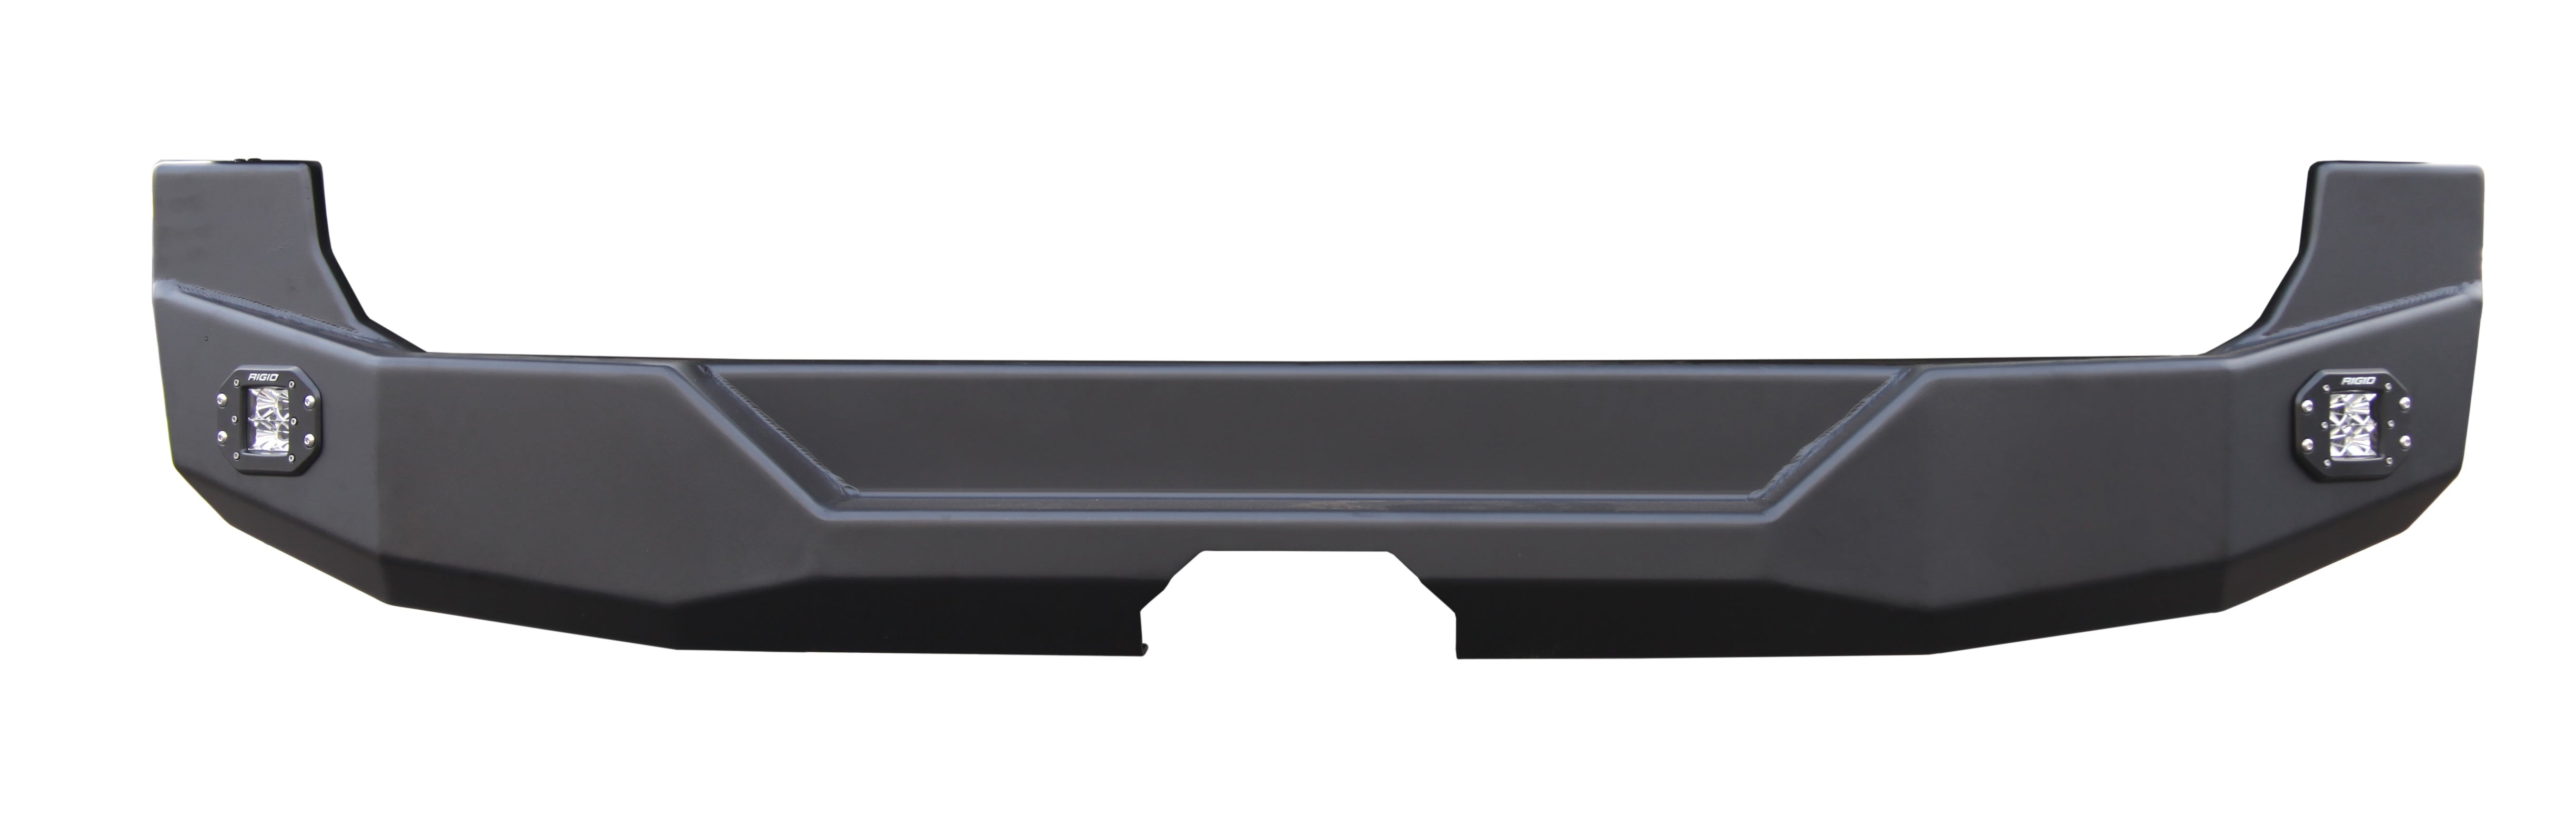 Backwoods Rear Mercedes Sprinter off-road bumper with black powder coat